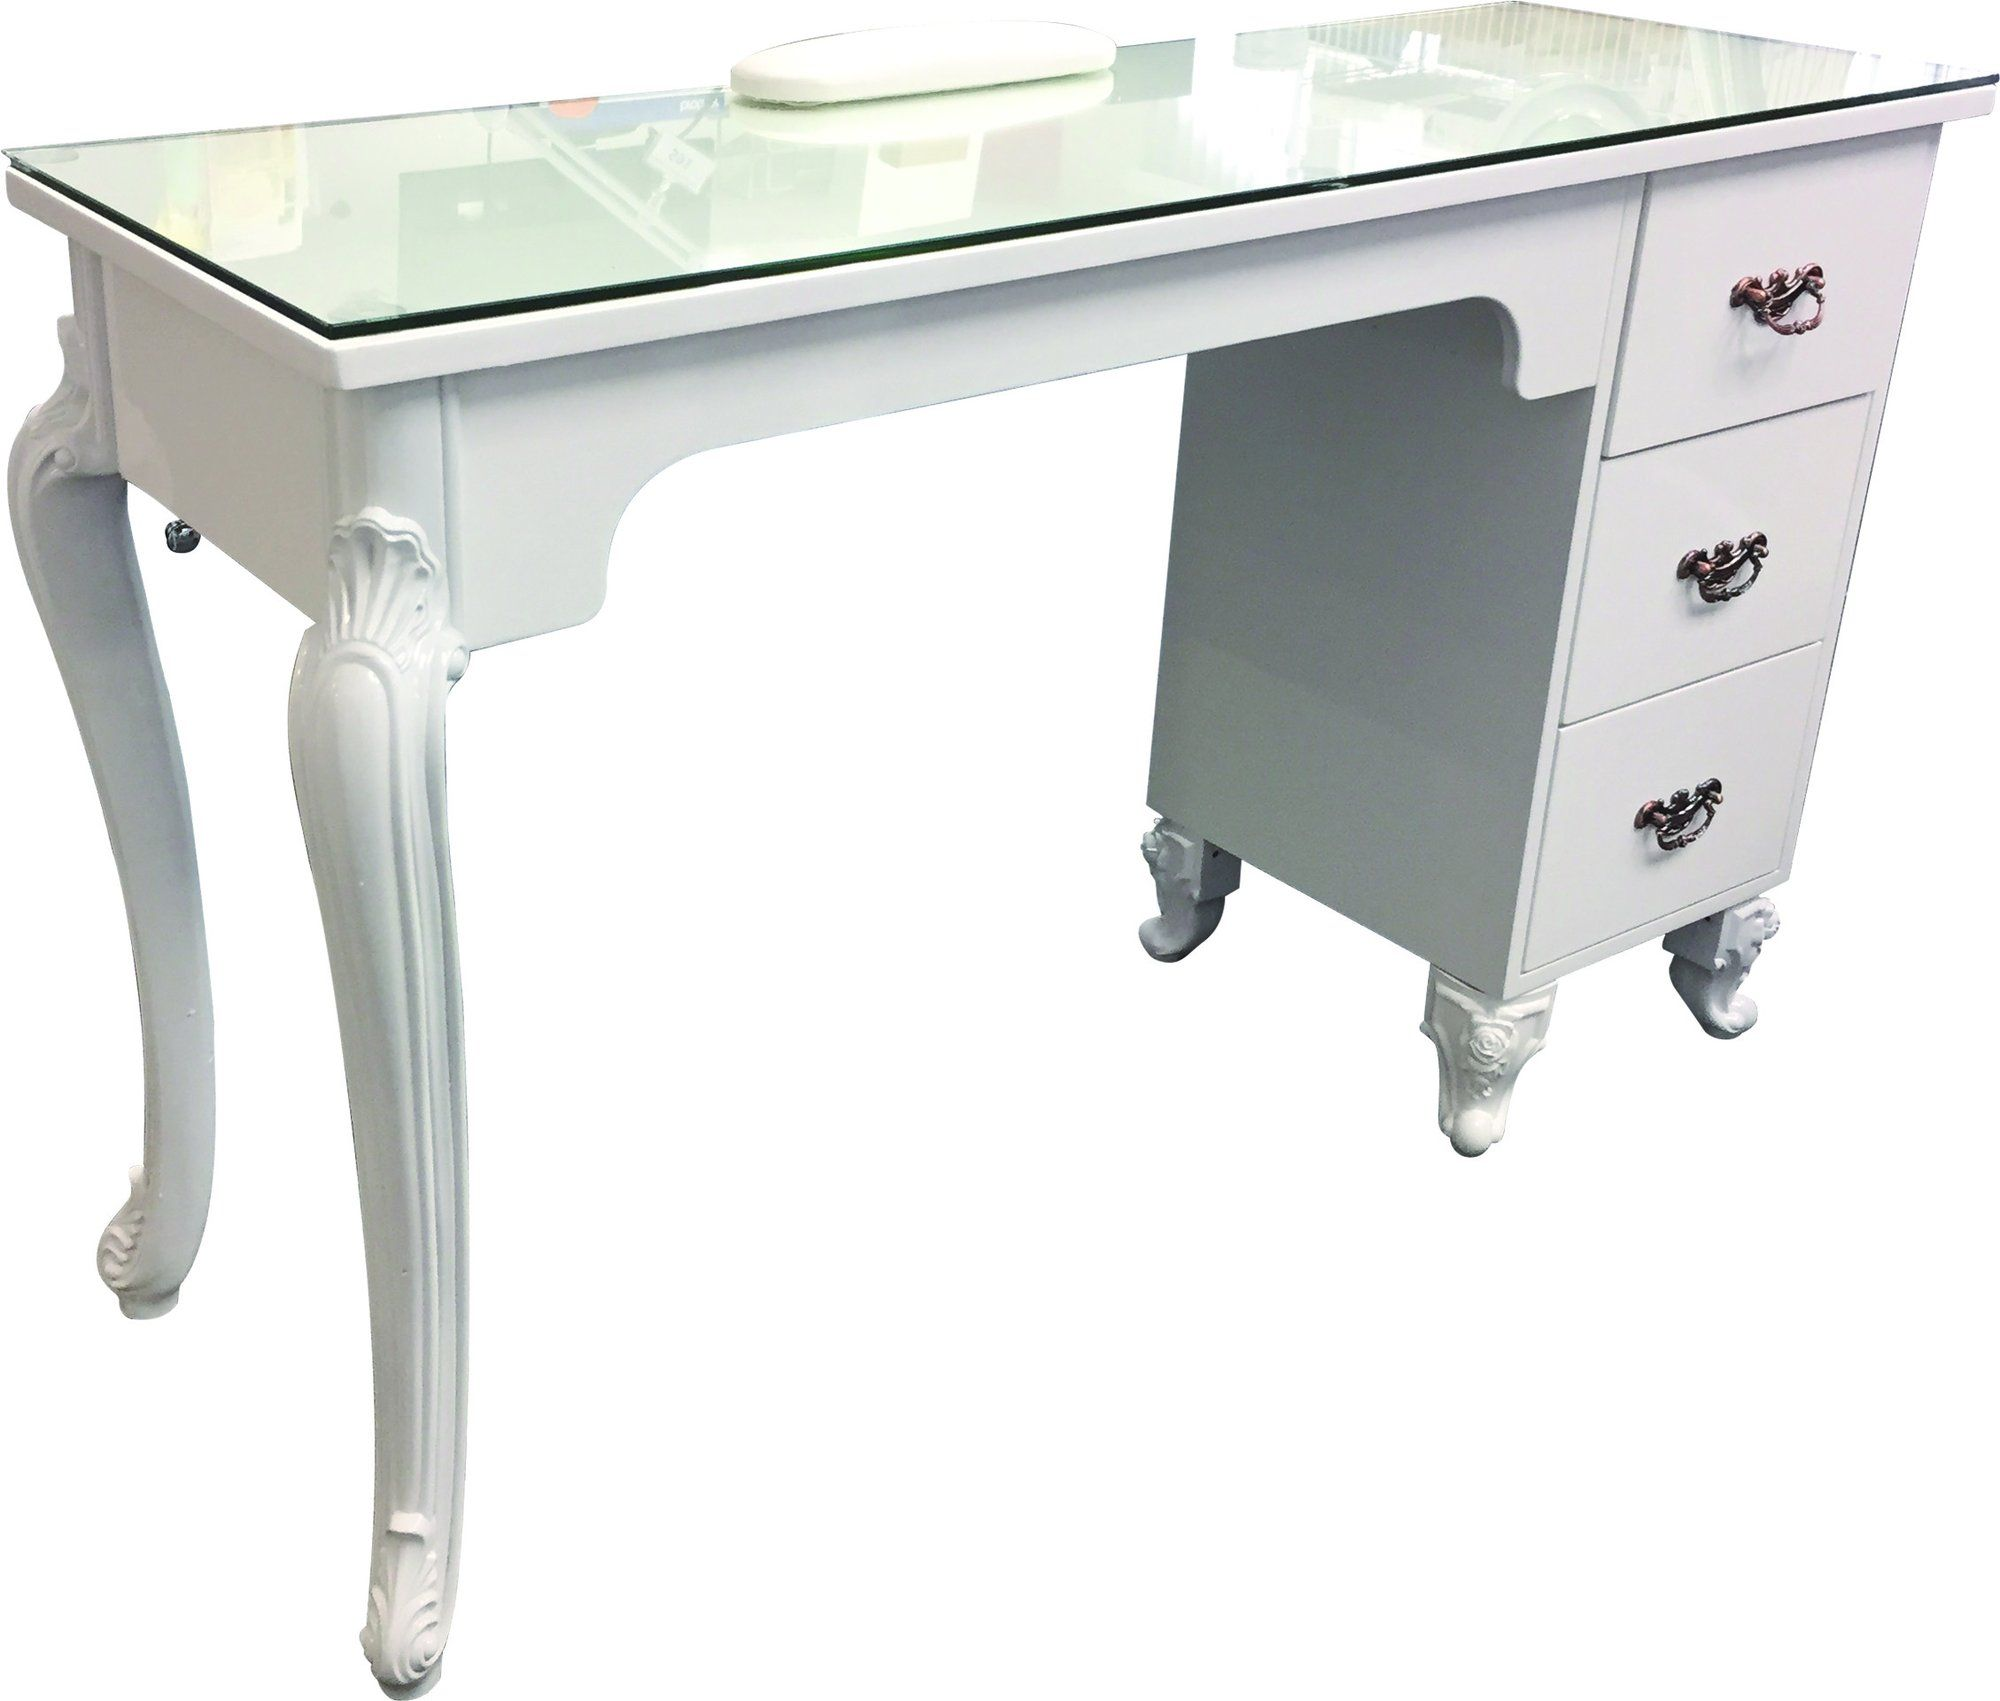 GD Manicure Table Manicure table, Sale table, Table